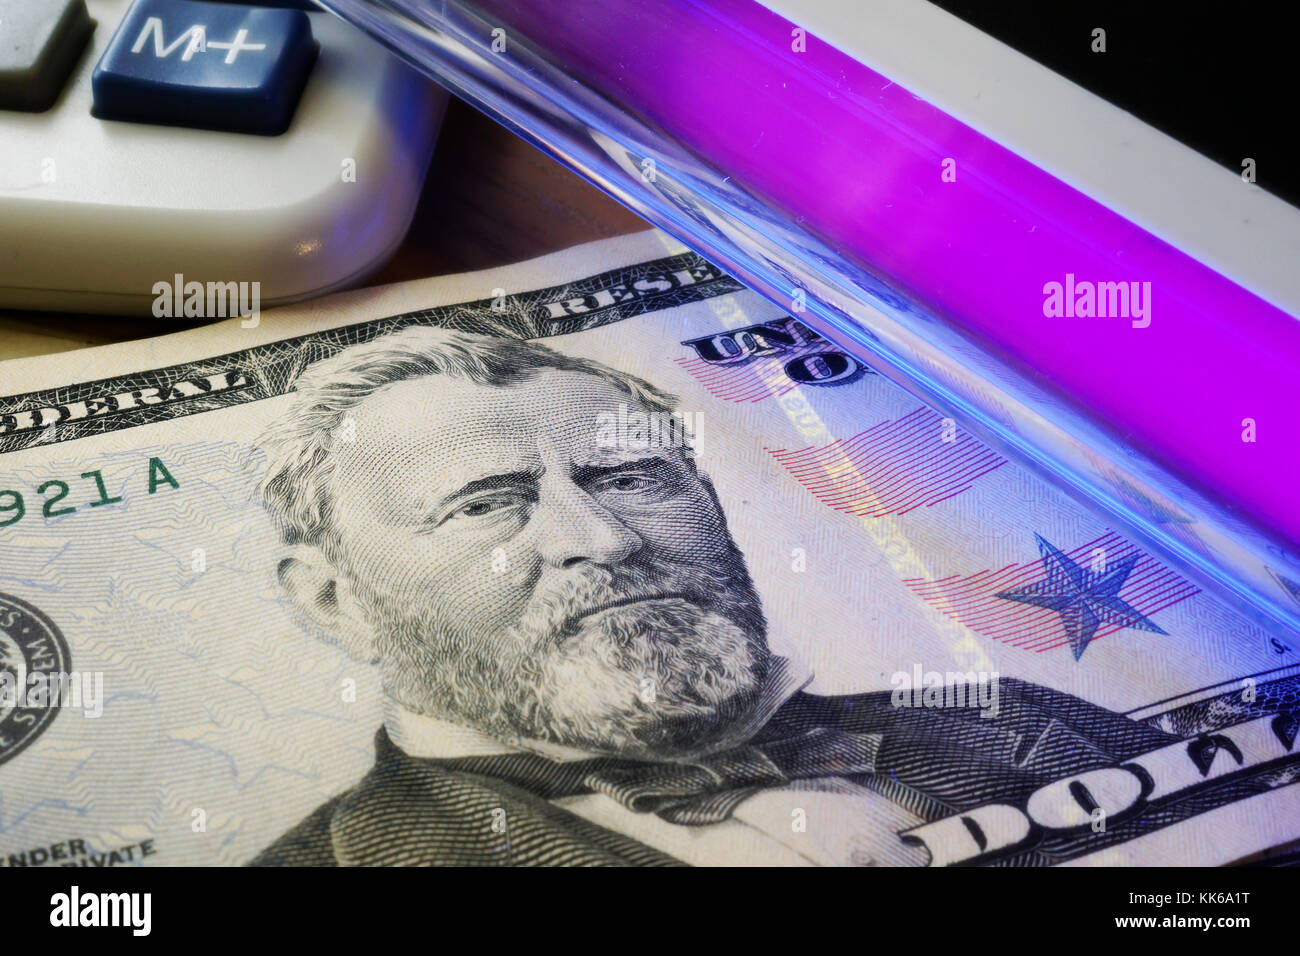 How To Check Fake Money With Uv Light